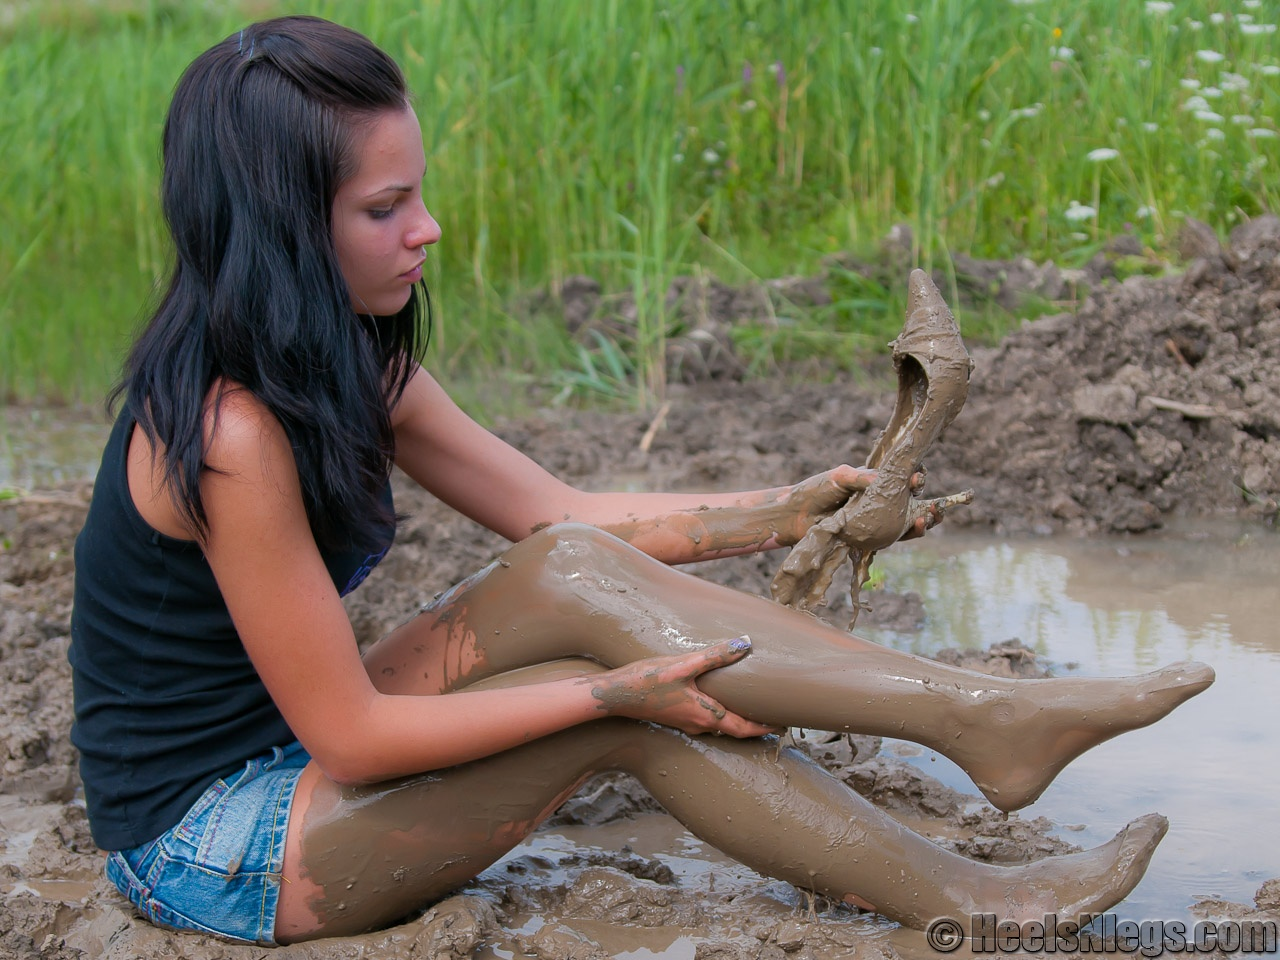 Muddy boots dating website